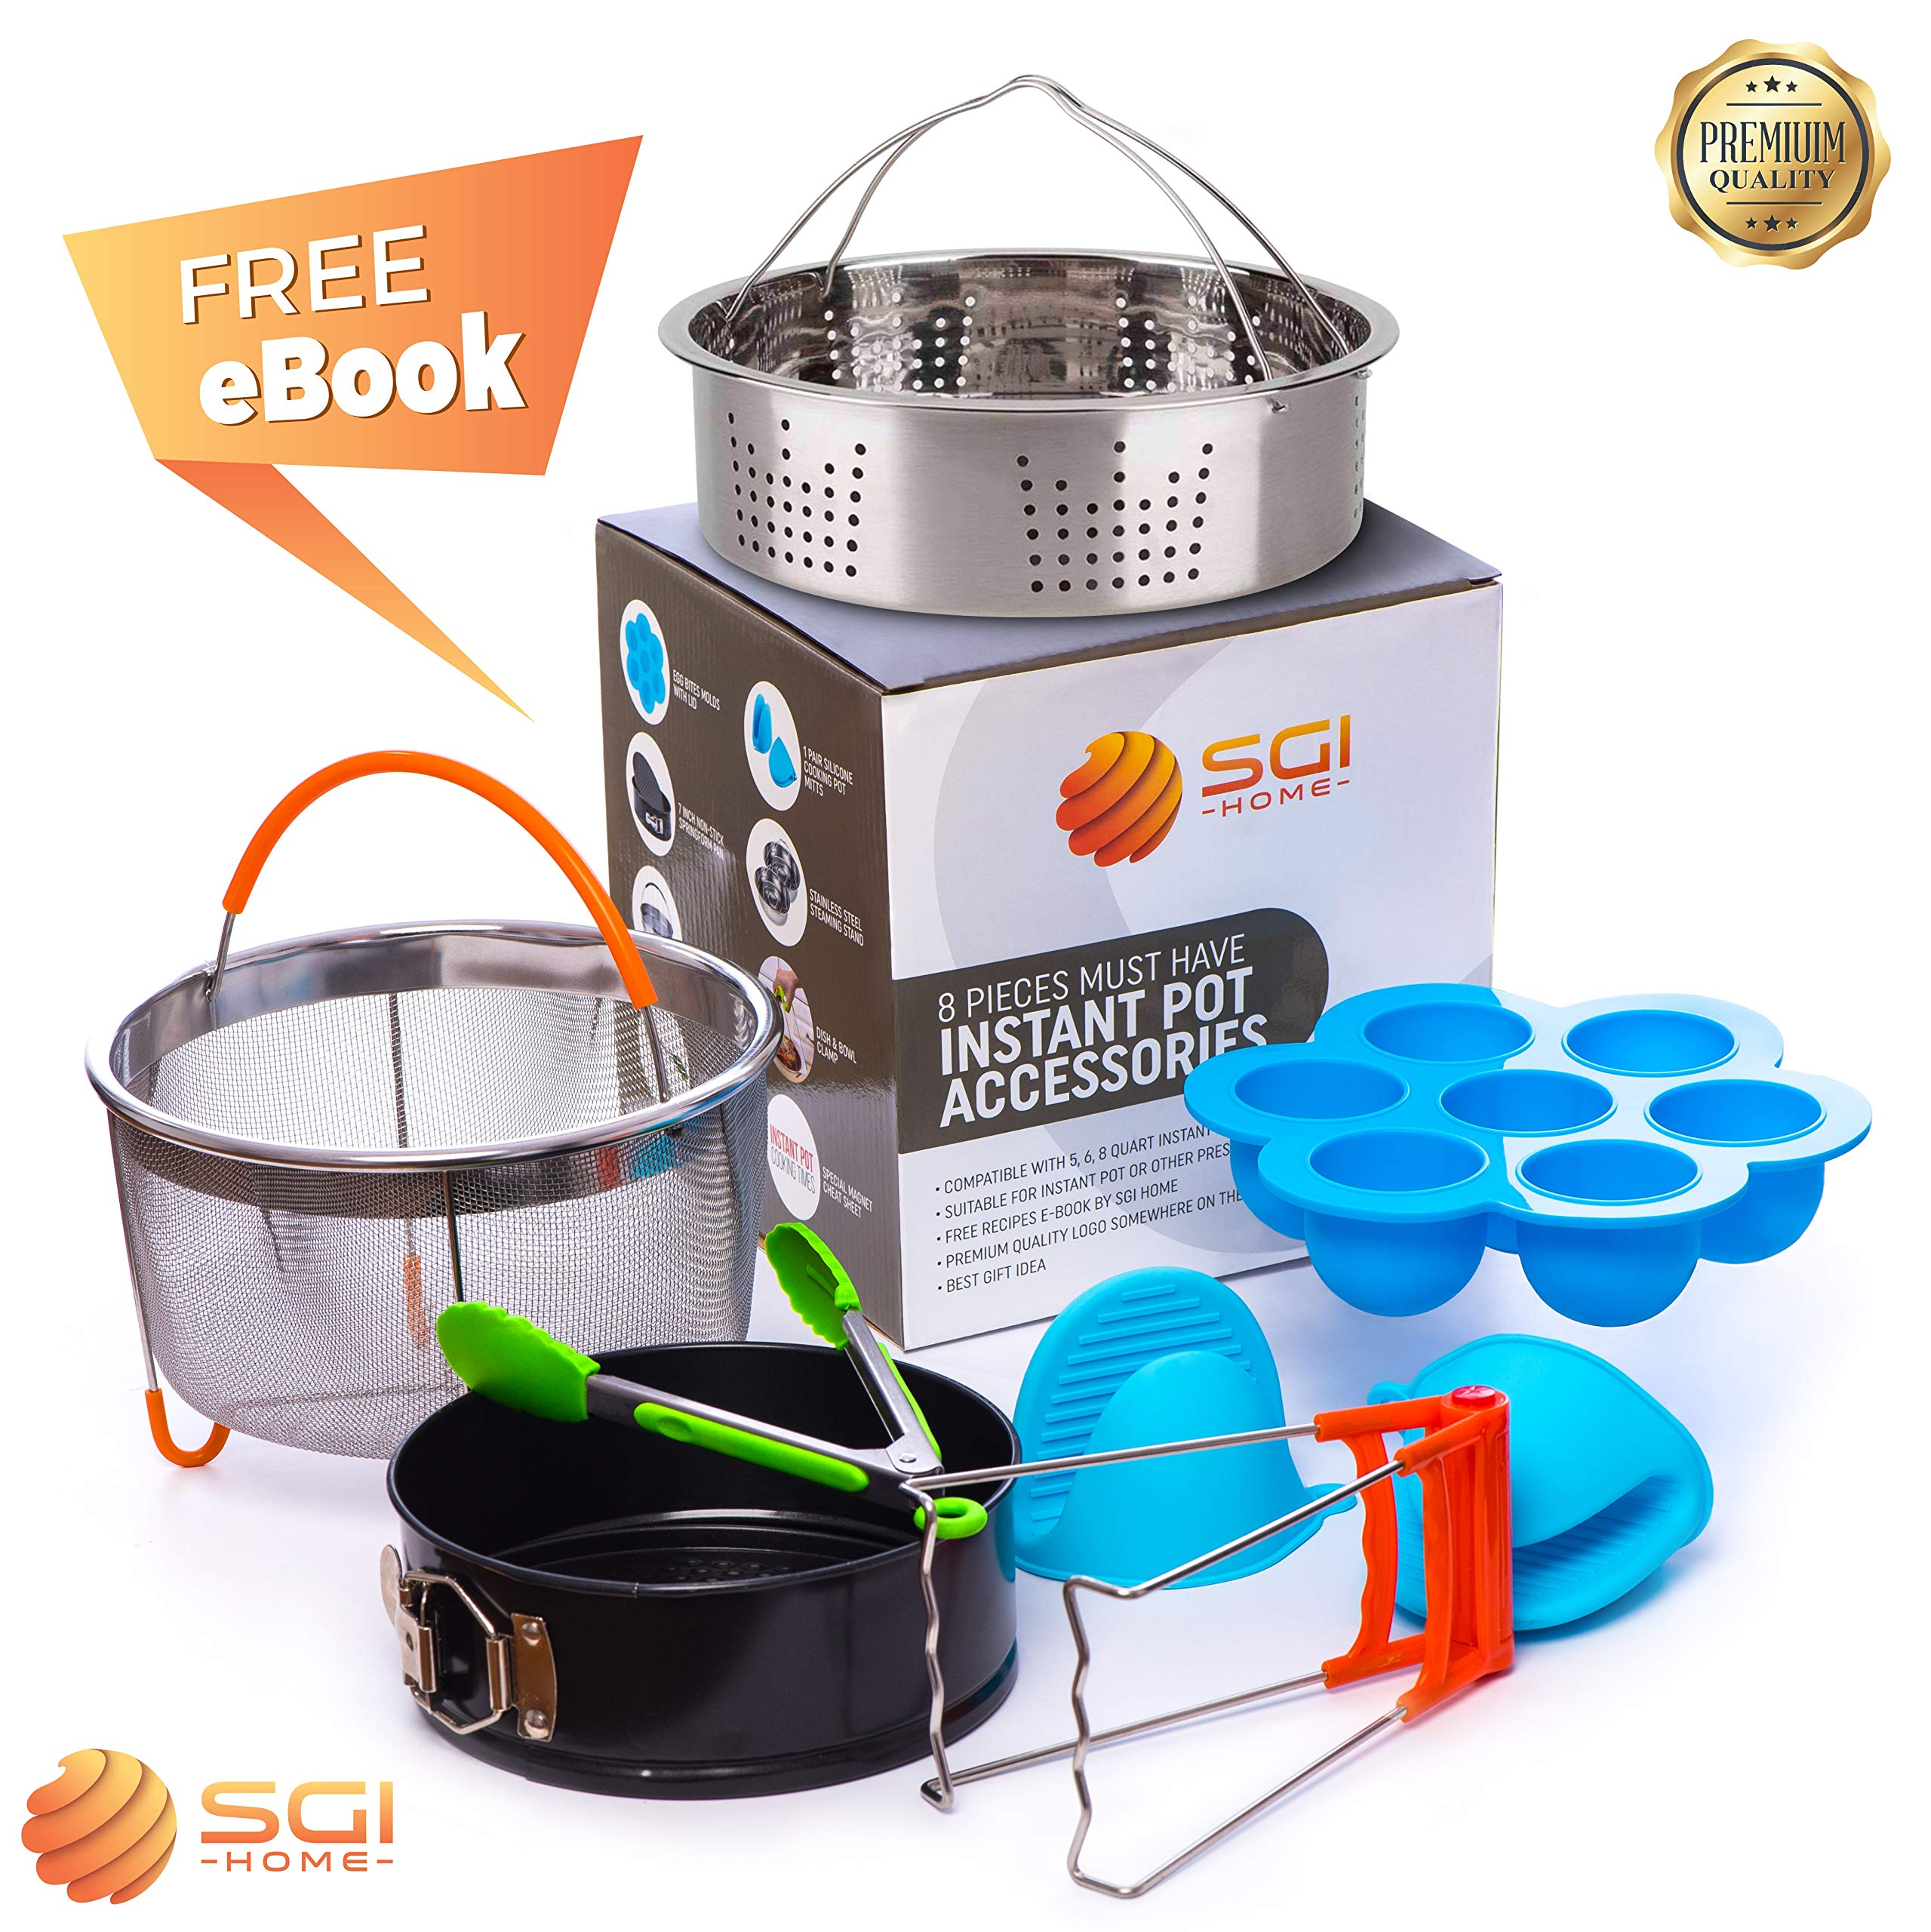 Instapot Accessory – Instant Pot Accessories Fits 5 – 6 – 8 Qt - Steamer Basket - Cake Pan - Silicone Gloves - Egg Bites Mold – Tong – Bowl Clip – Cook Times Magnetic Cheat Sheet